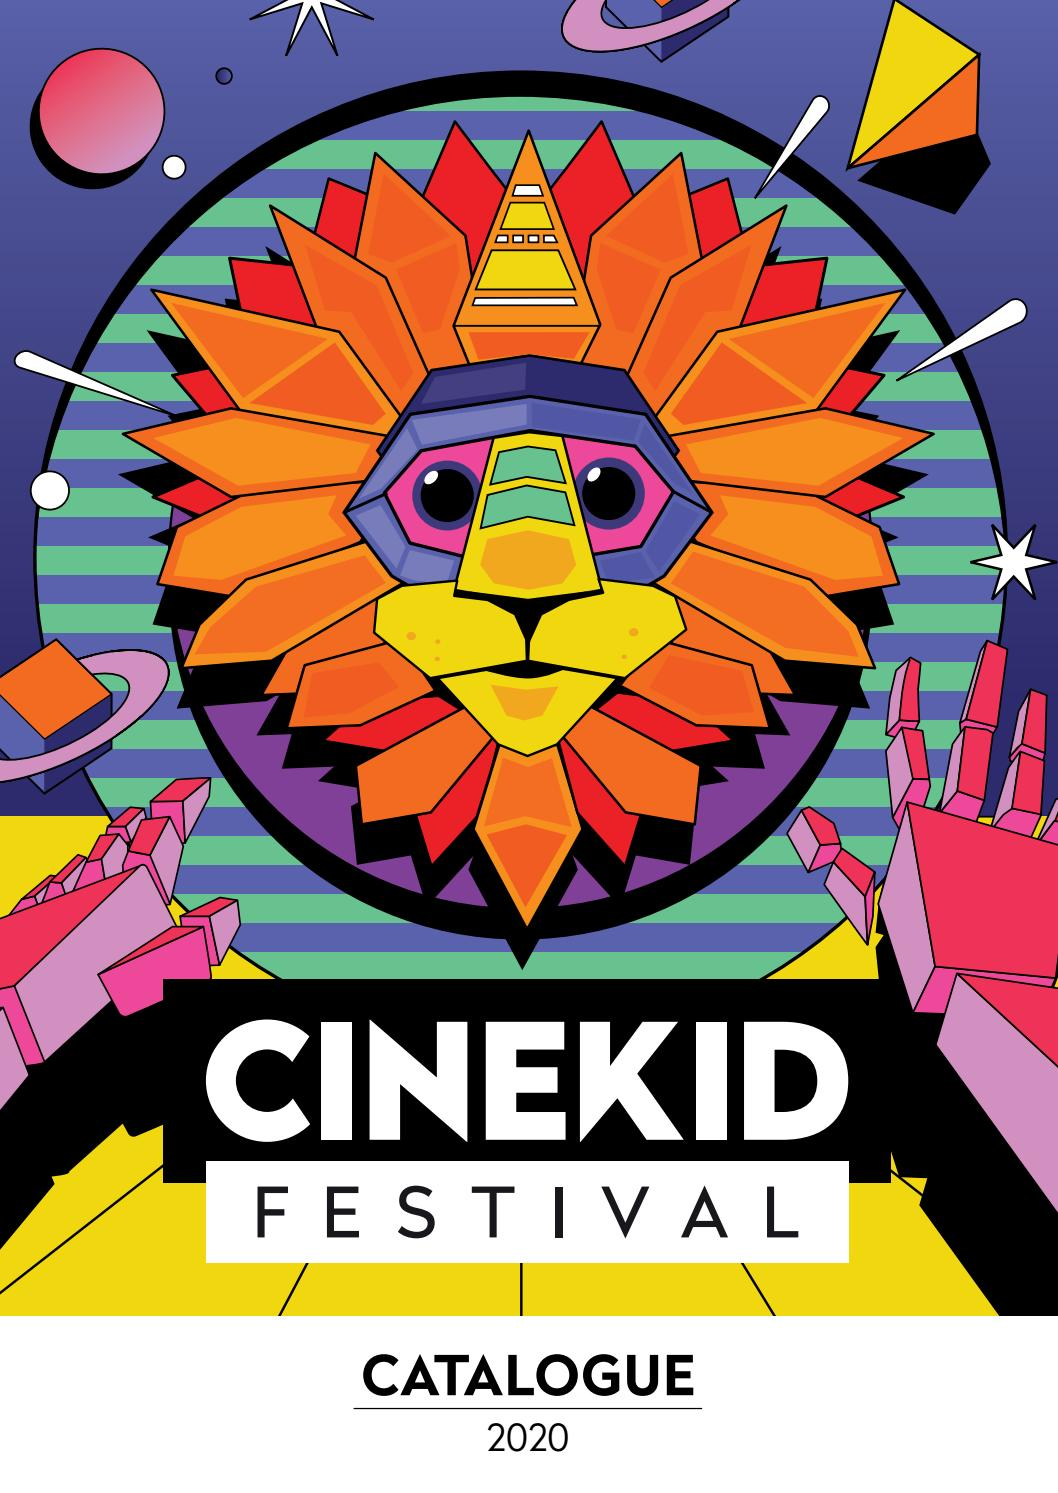 Cinekid Catalogue 2020 By Cinekid Issuu